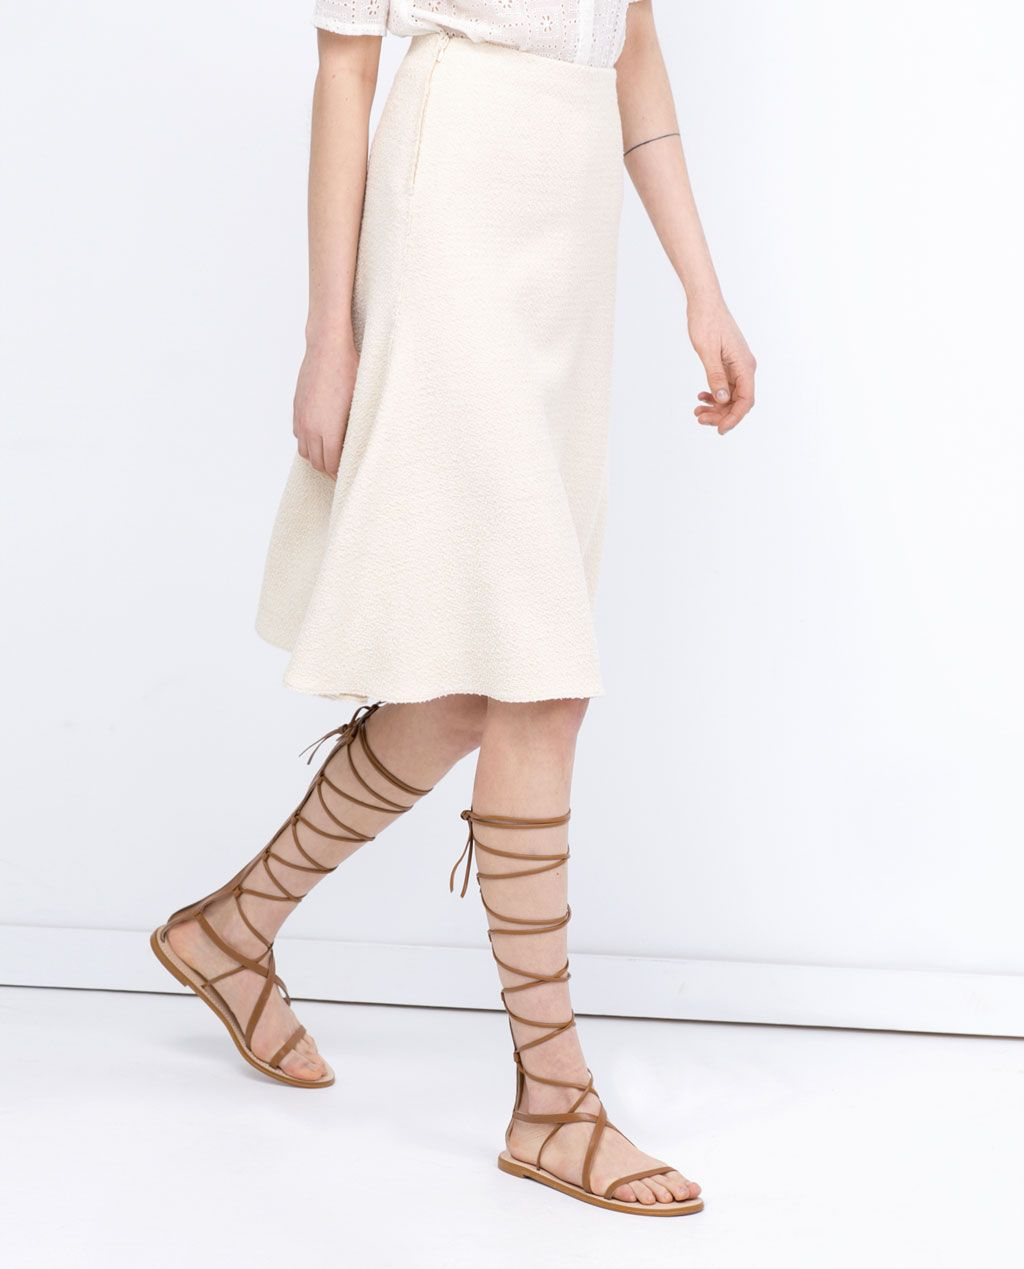 a02a57834907 ZARA - WOMAN - LEATHER GLADIATOR SANDALS